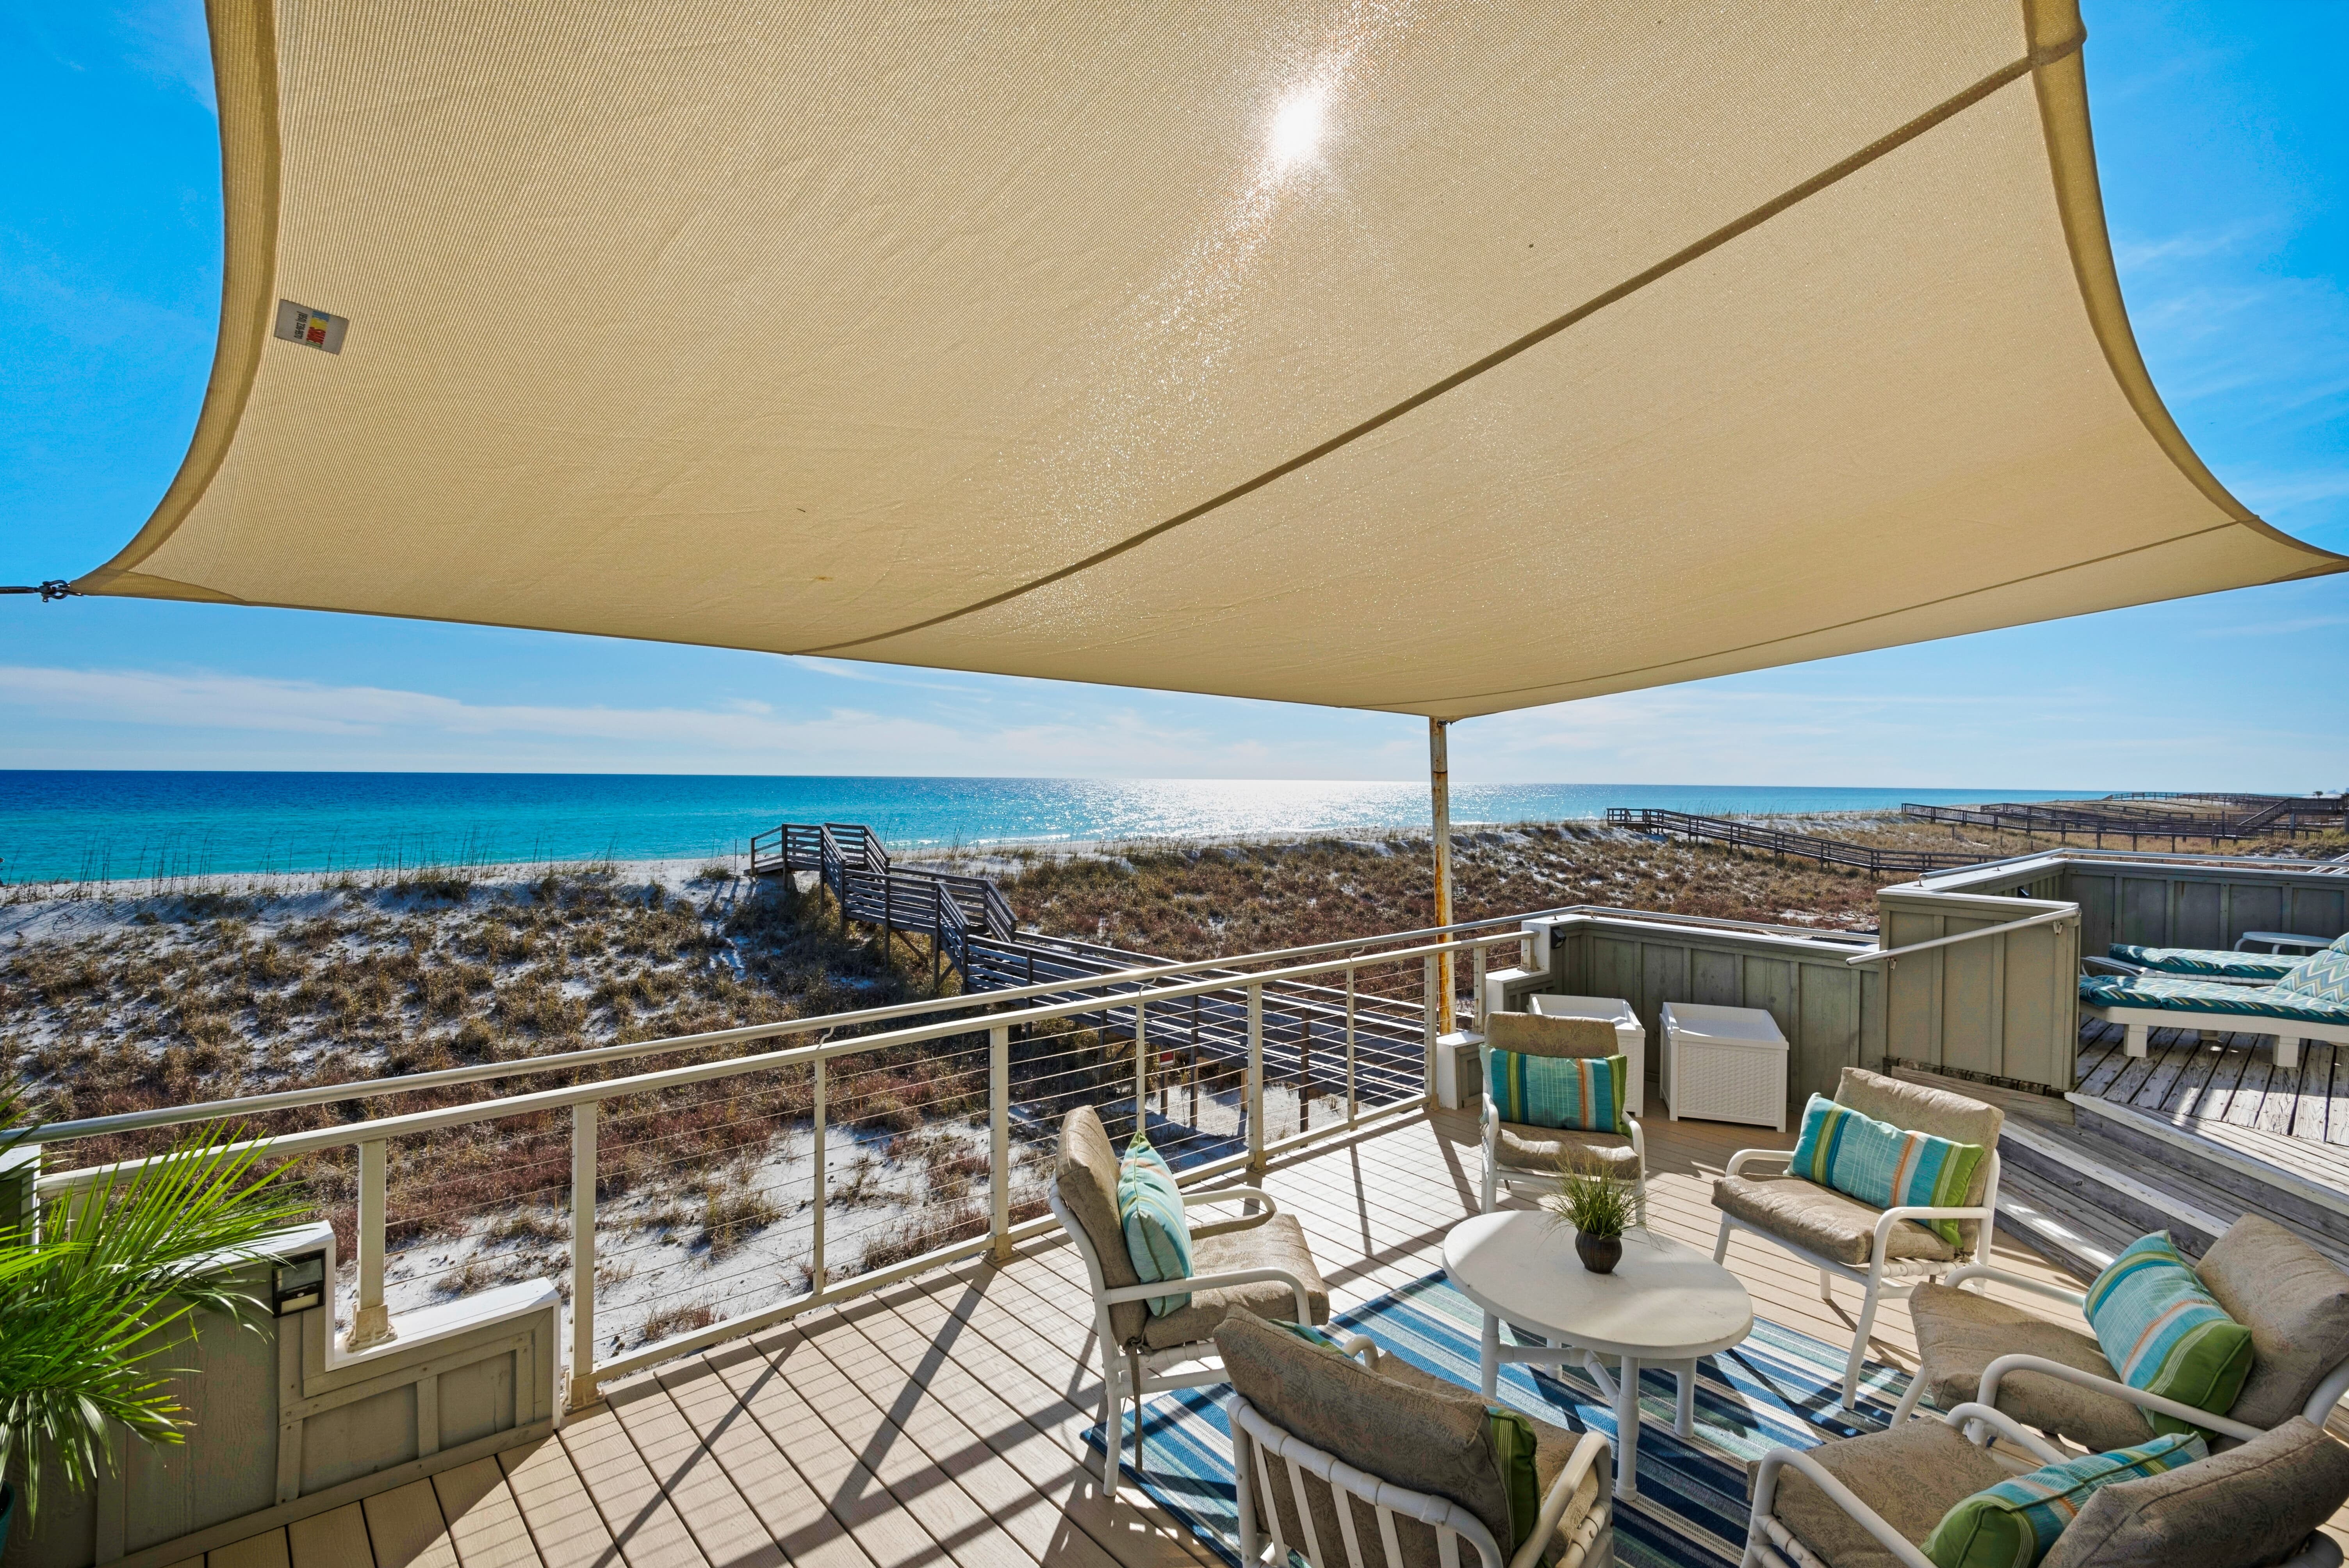 7527 Gulf Blvd - The Oyster House/Cottage rental in Navarre Beach House Rentals in Navarre Florida - #61